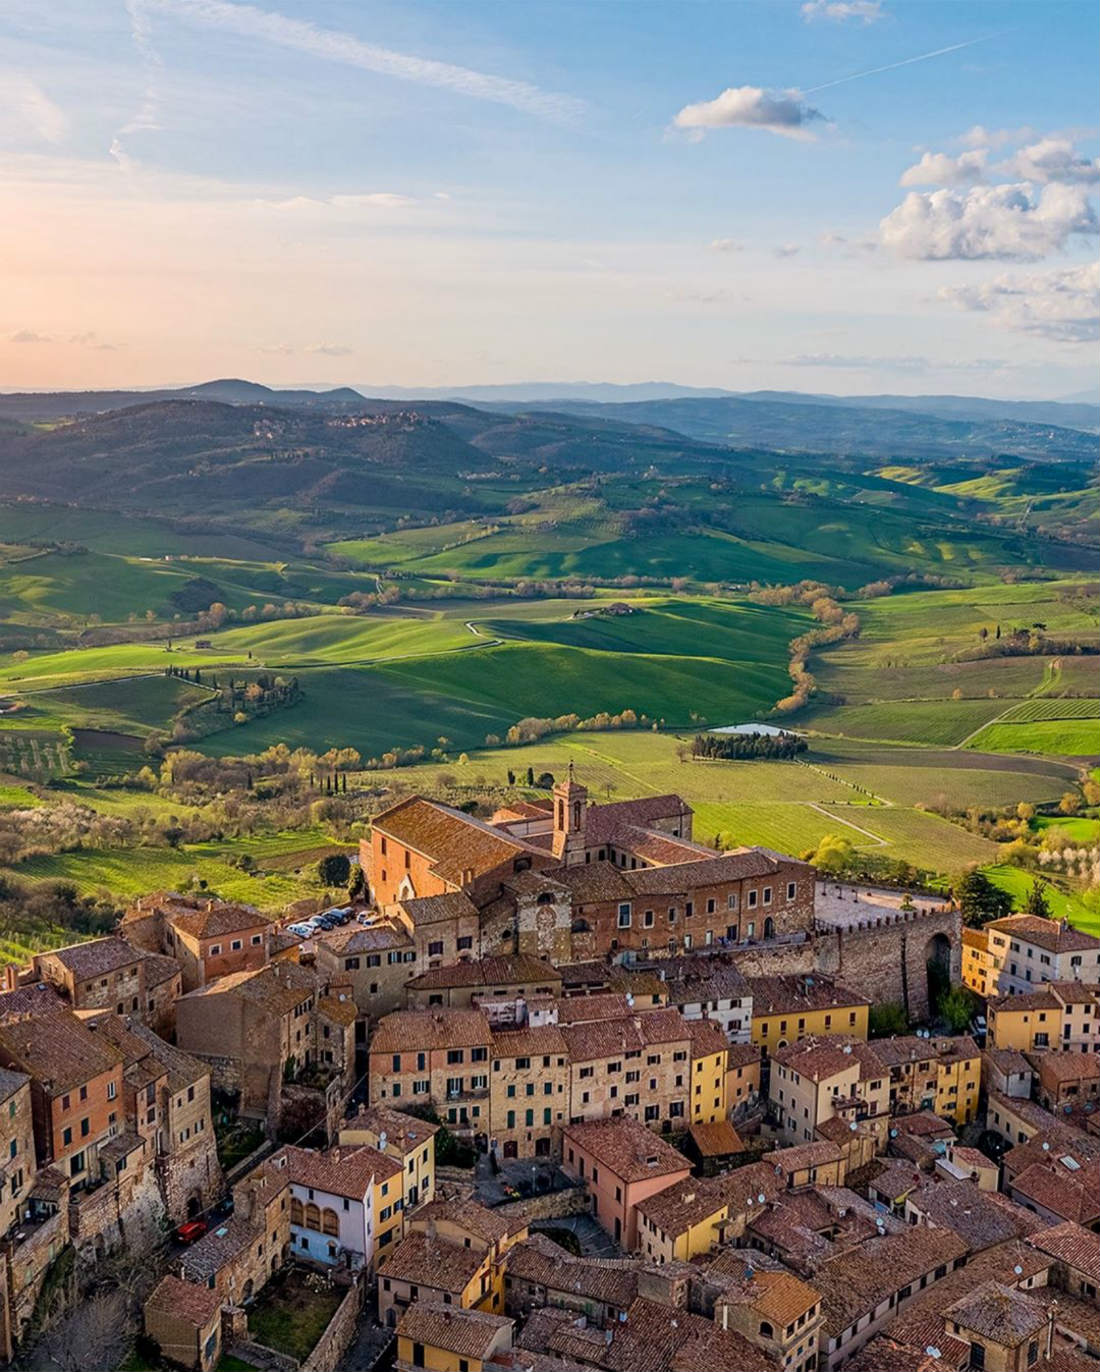 Cycling routes in Montepulciano and surroundings